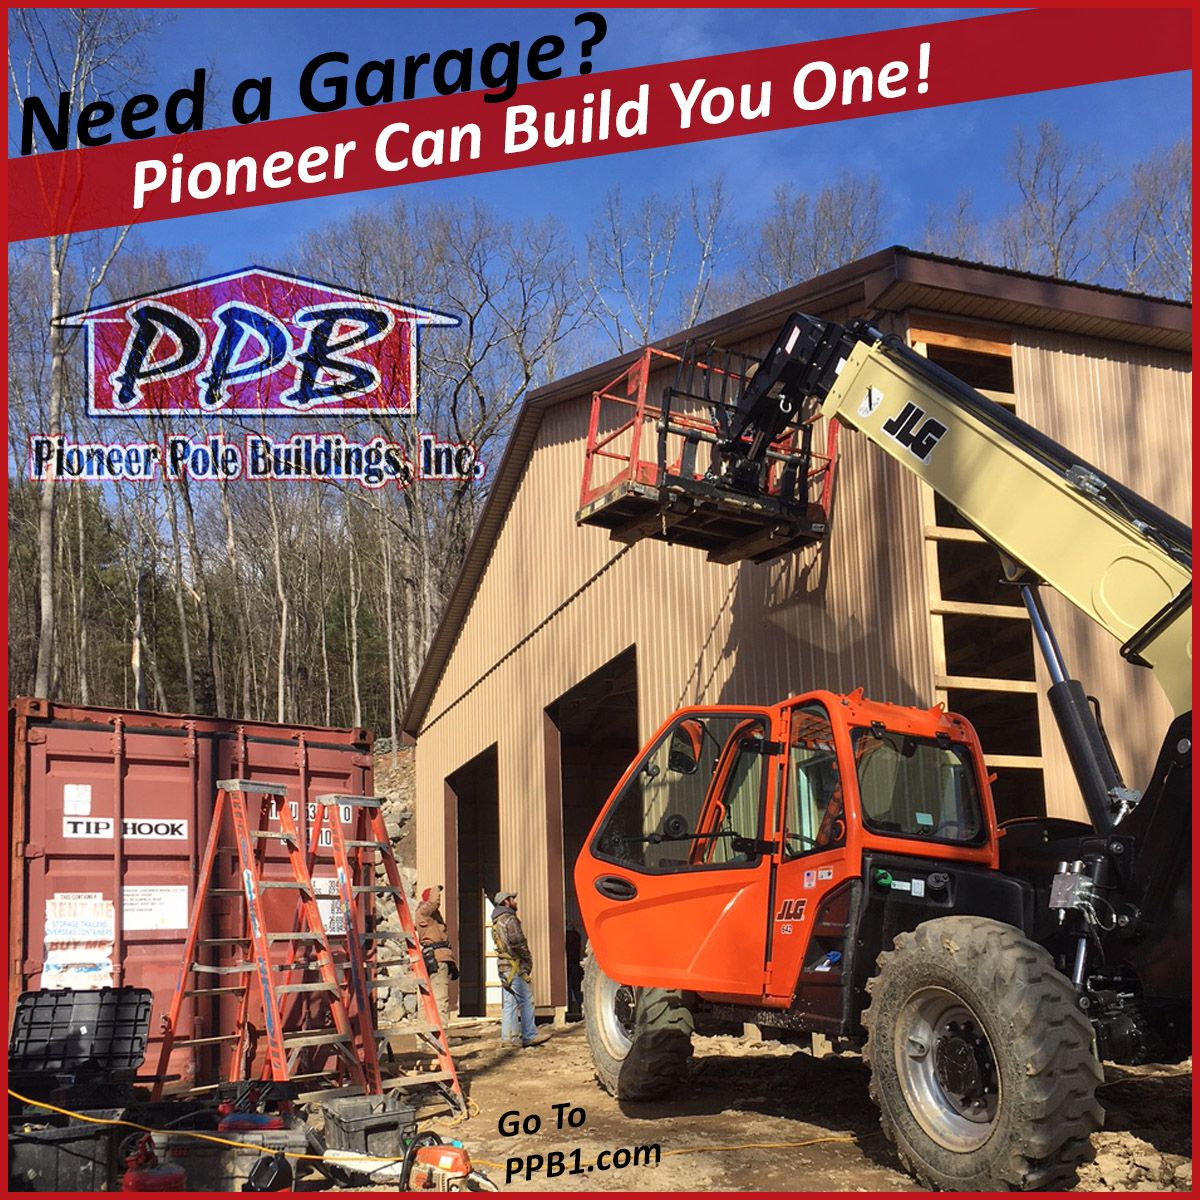 Need a Garage? Pioneer Can Build You One! http//www